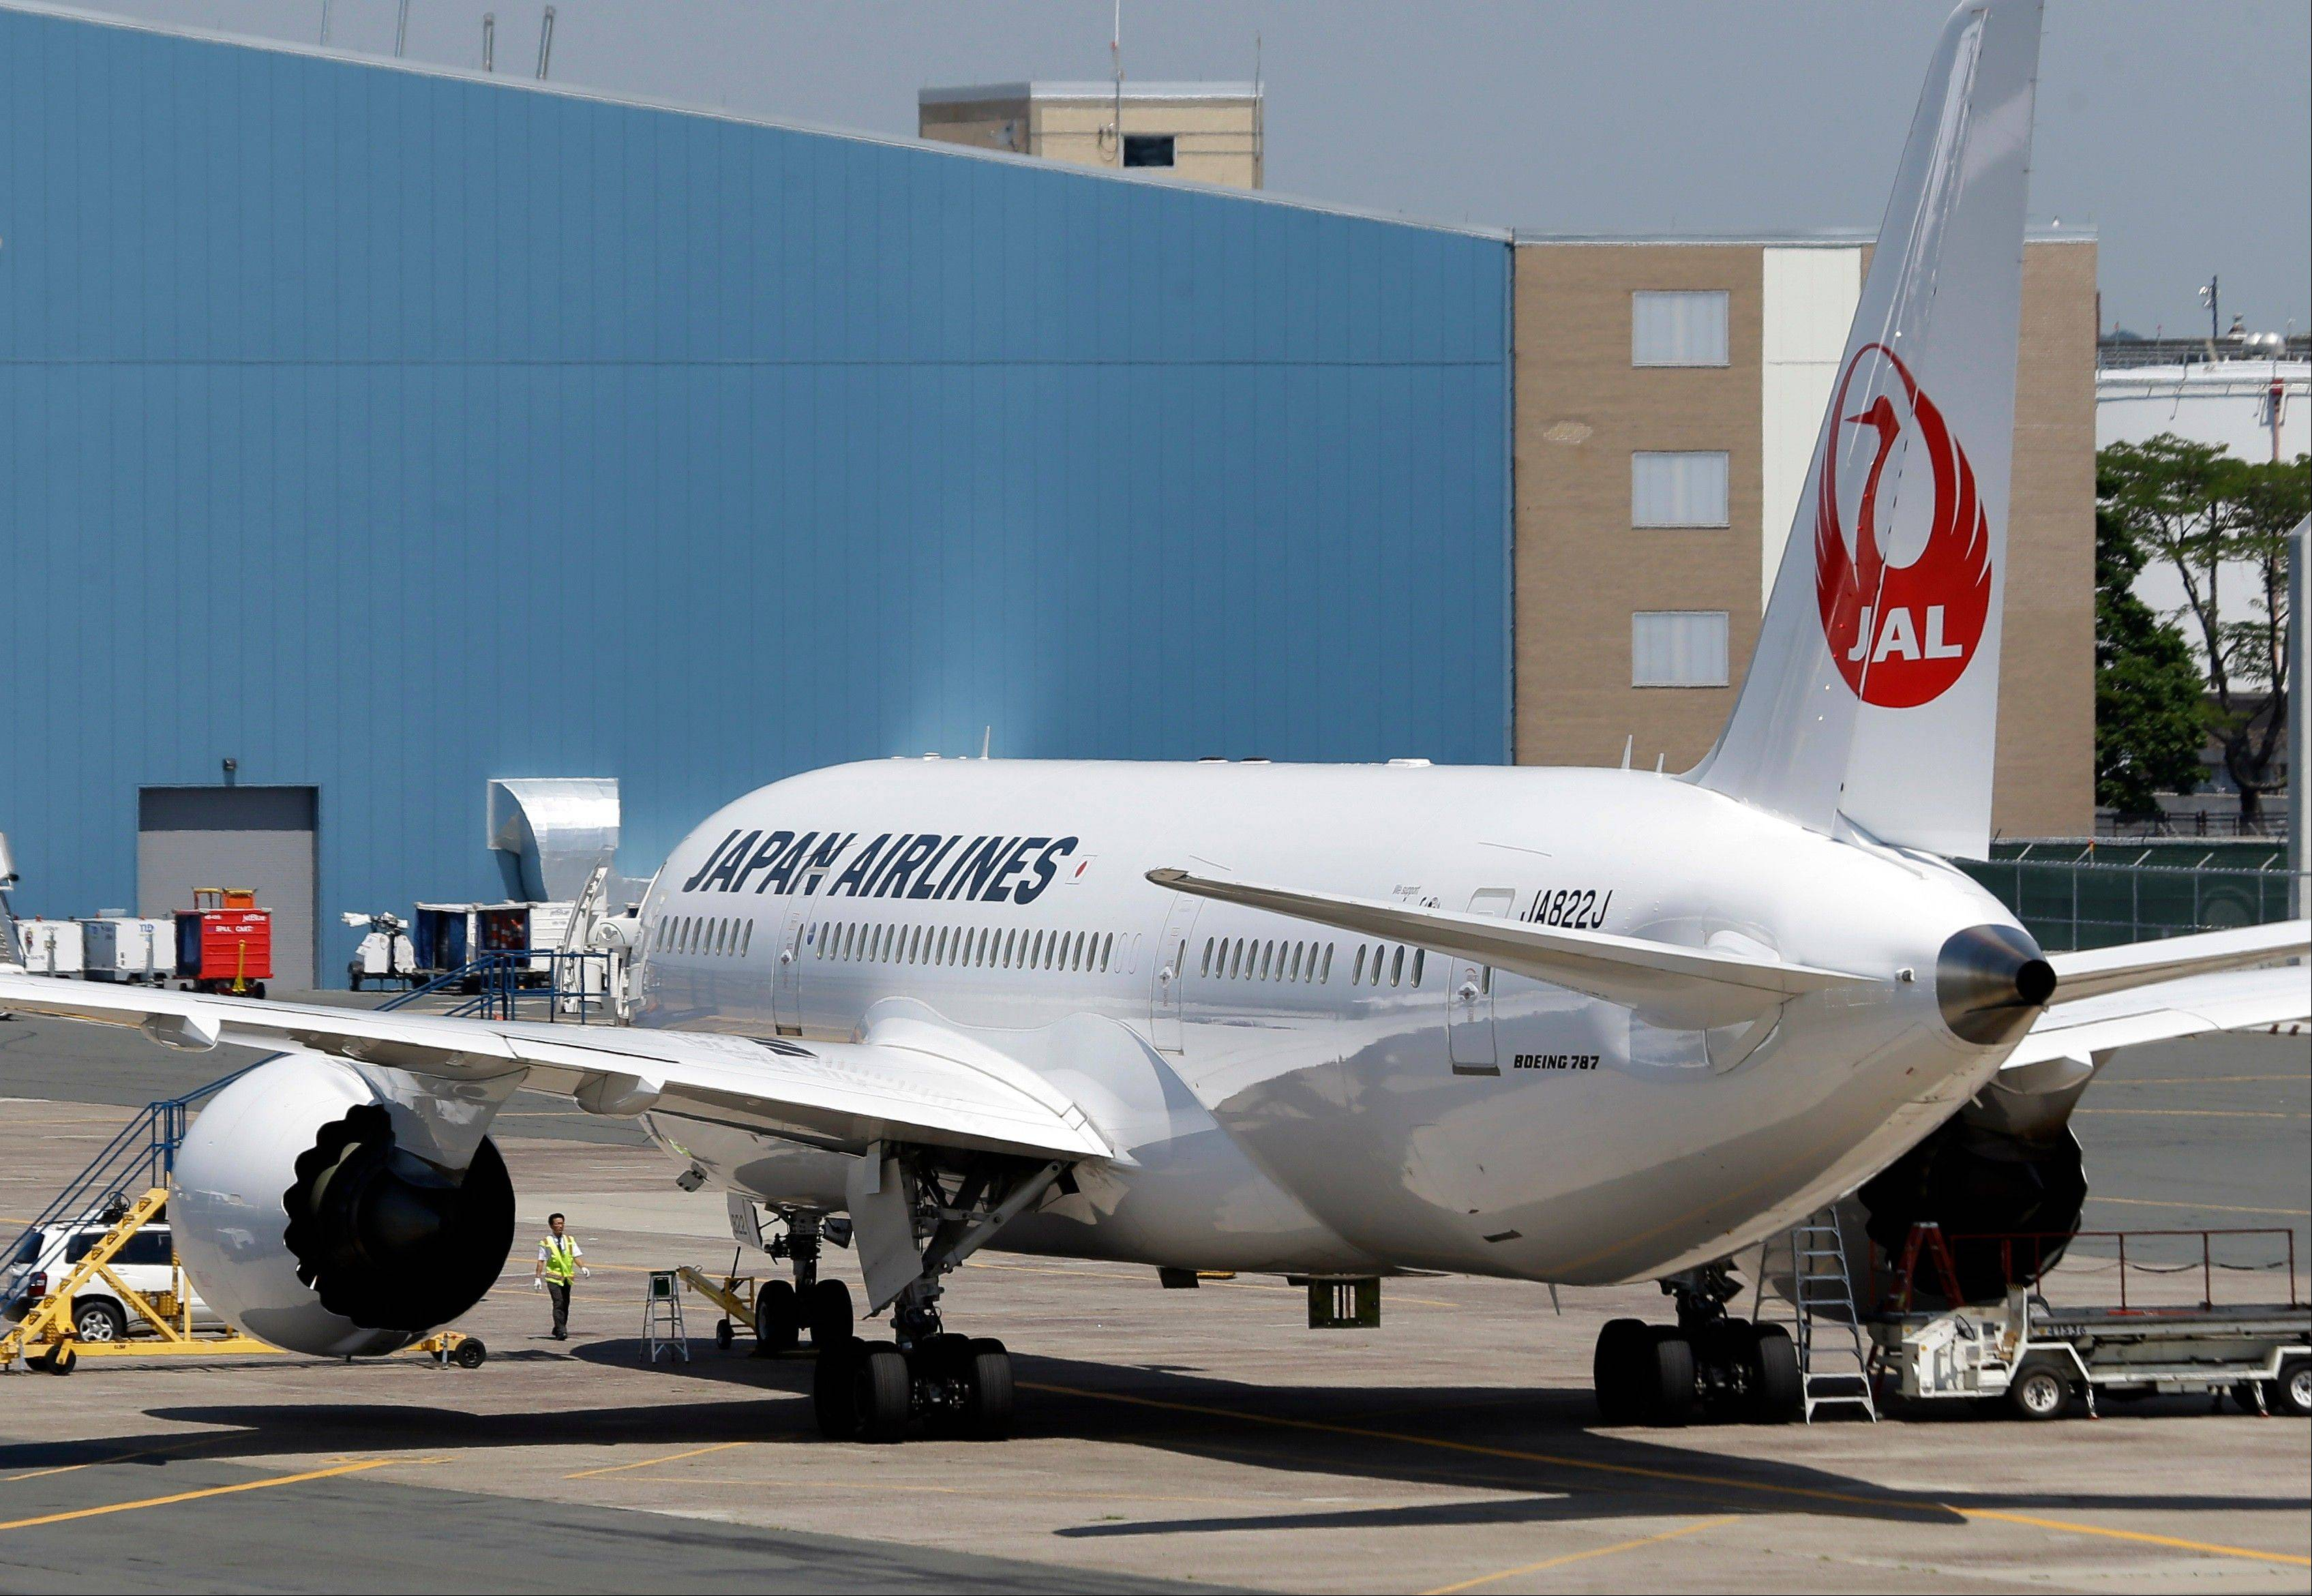 An airport worker approaches a Japan Airlines Boeing 787 aircraft as it sits on the tarmac Friday at Terminal E at Logan International Airport in Boston. The JAL aircraft's flight to Tokyo returned to Boston on Thursday because of a possible fuel pump issue. It's the latest trouble for the new Dreamliner aircraft.